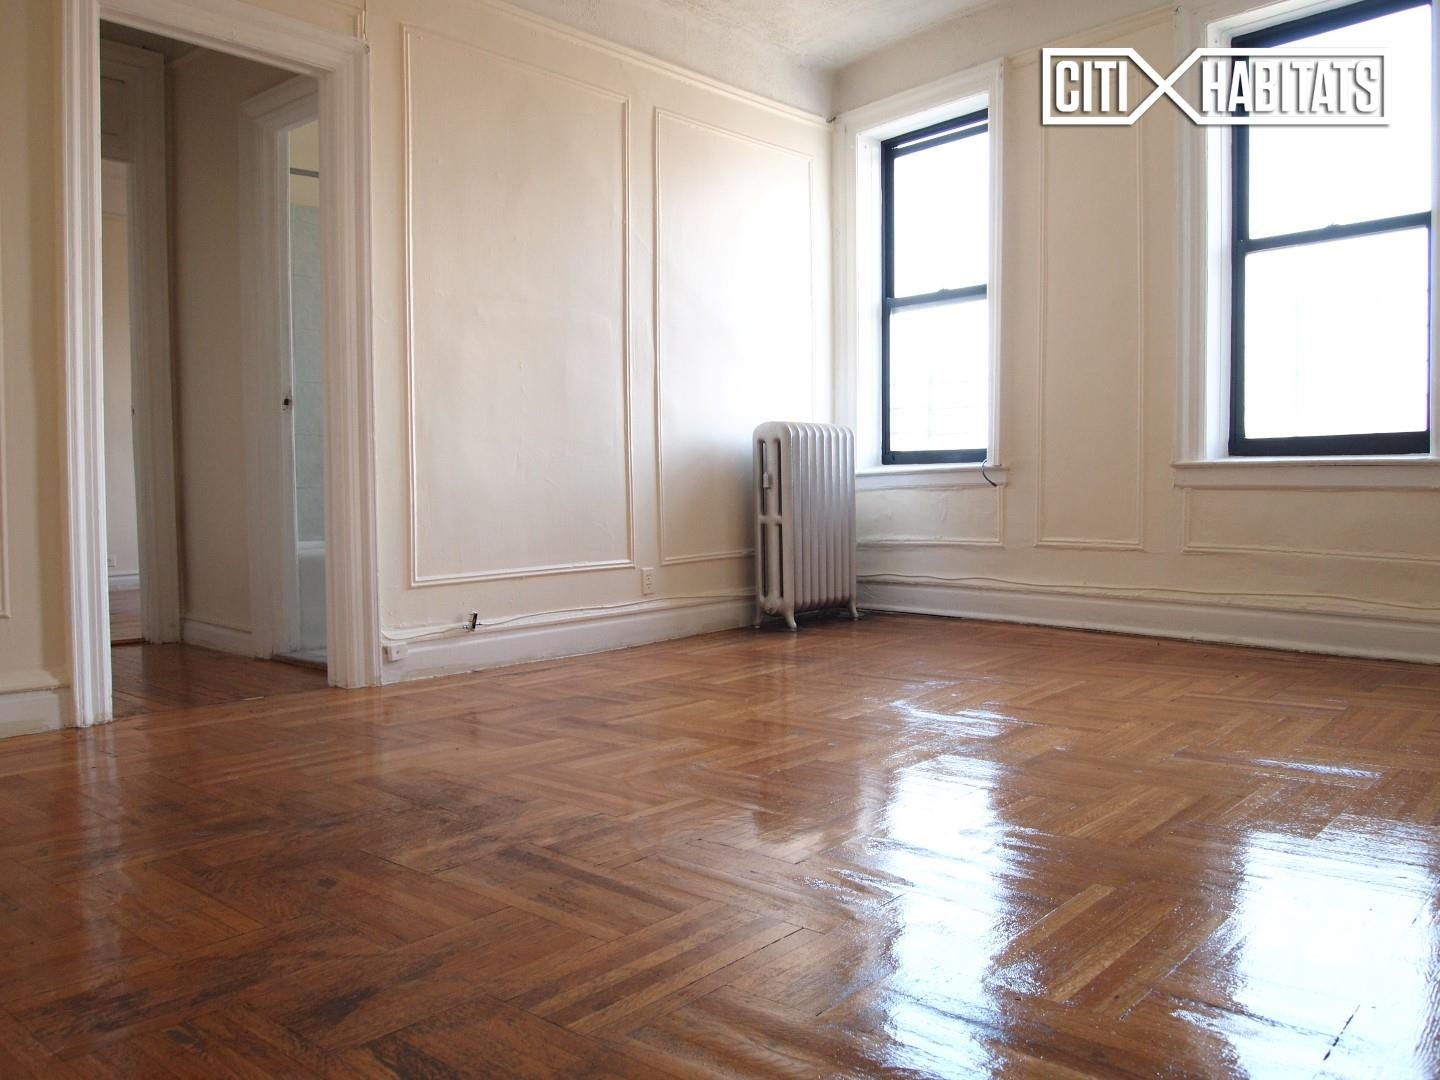 Grand Concourse C53 Bronx Ny 10468 1 Bedroom Apartment For Rent For 1 350 Month Zumper